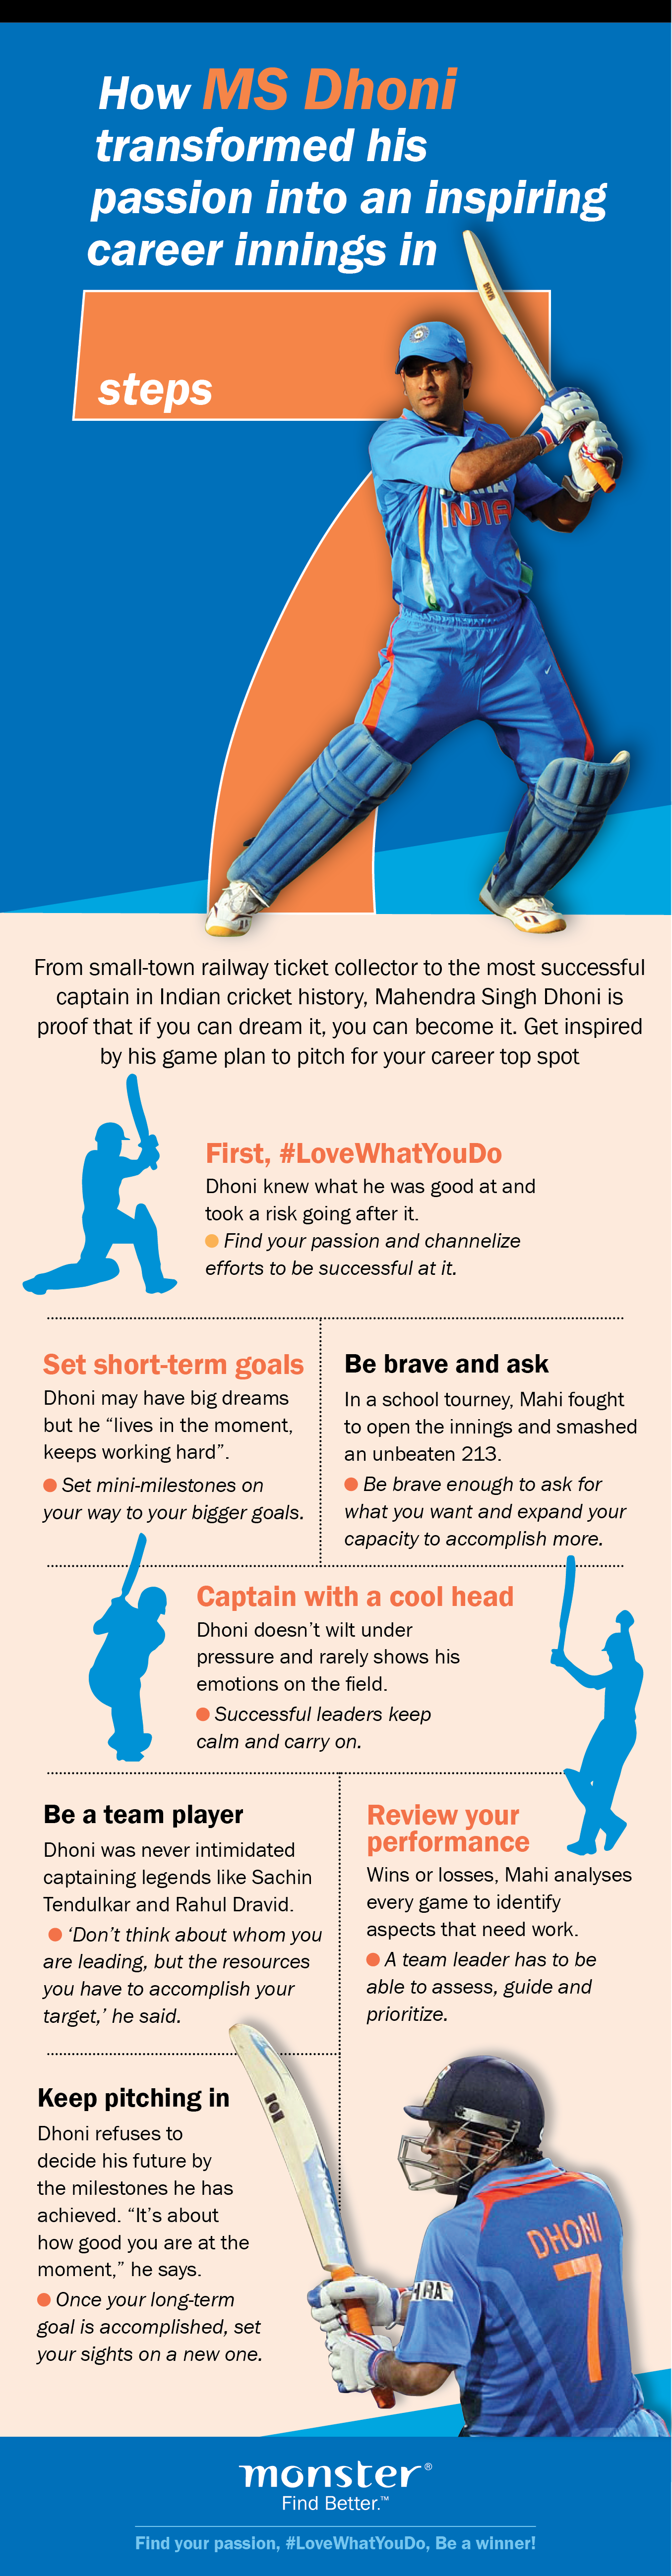 MS Dhoni Career